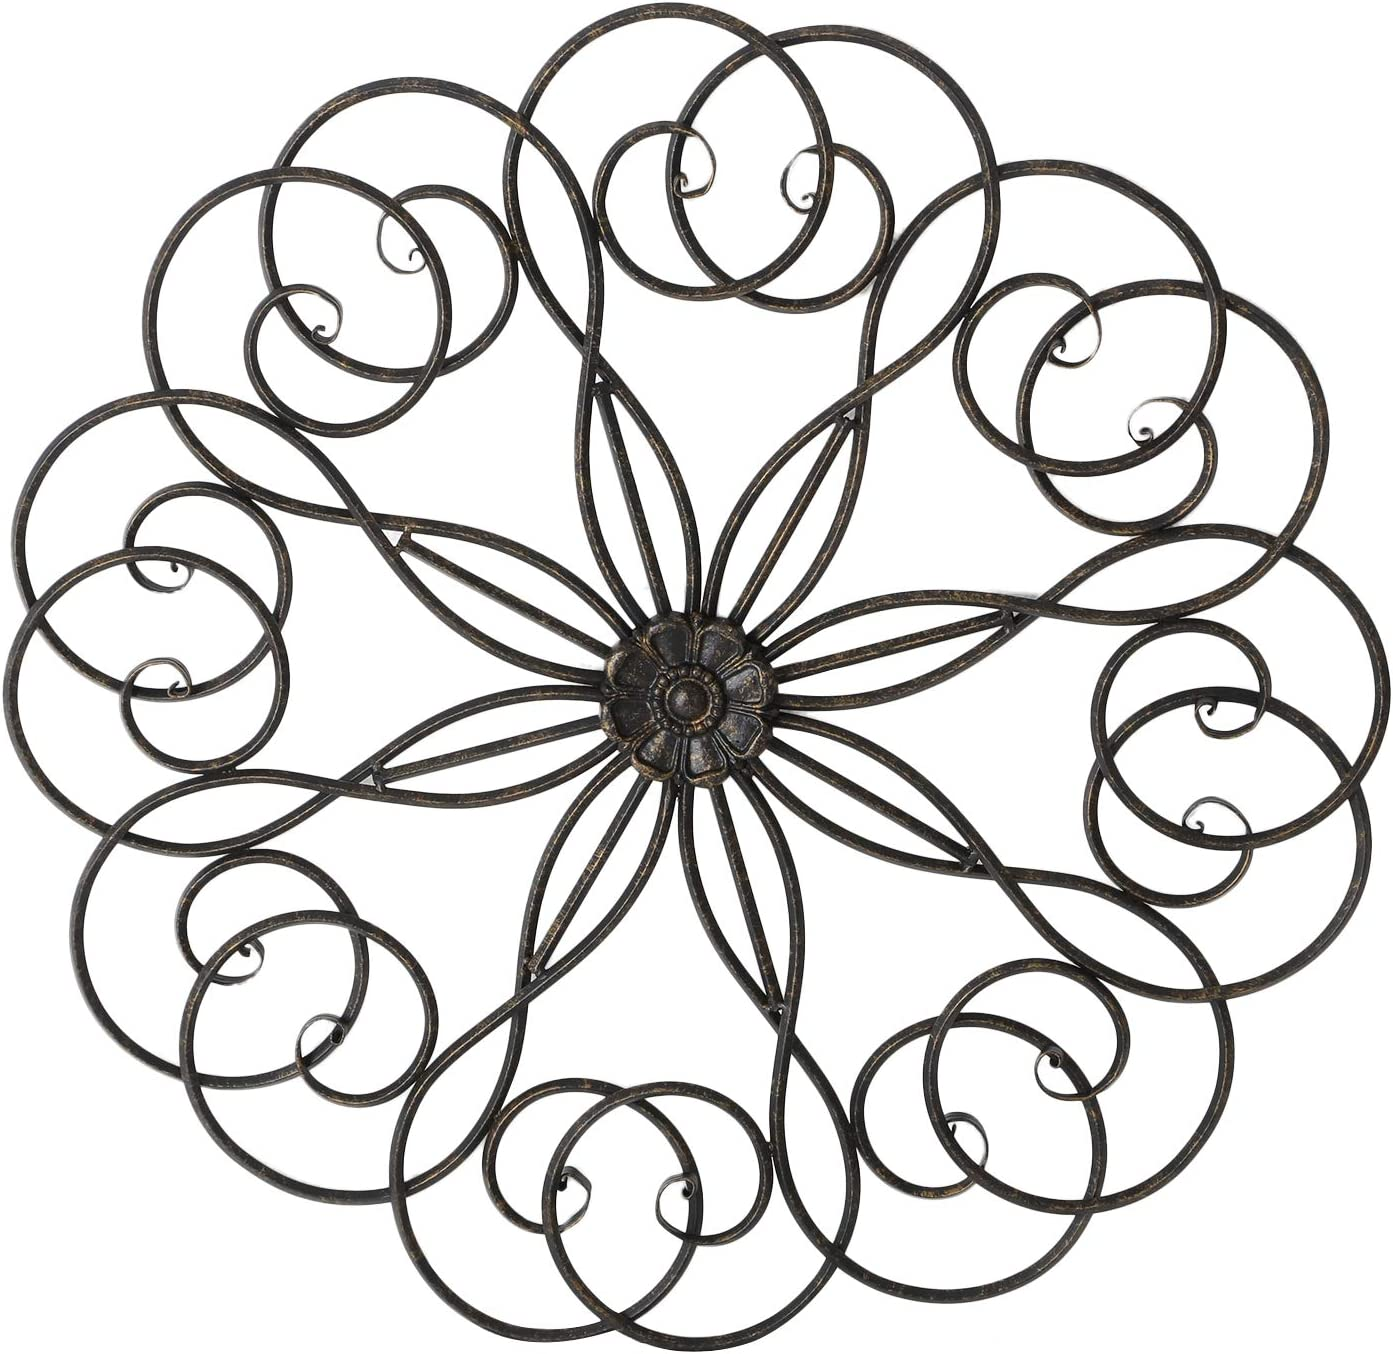 Adeco Scrolled Flower Metal Decor, Art Circle Living Room Home Decoration-28x28 Inches Wall Sculptures, Black